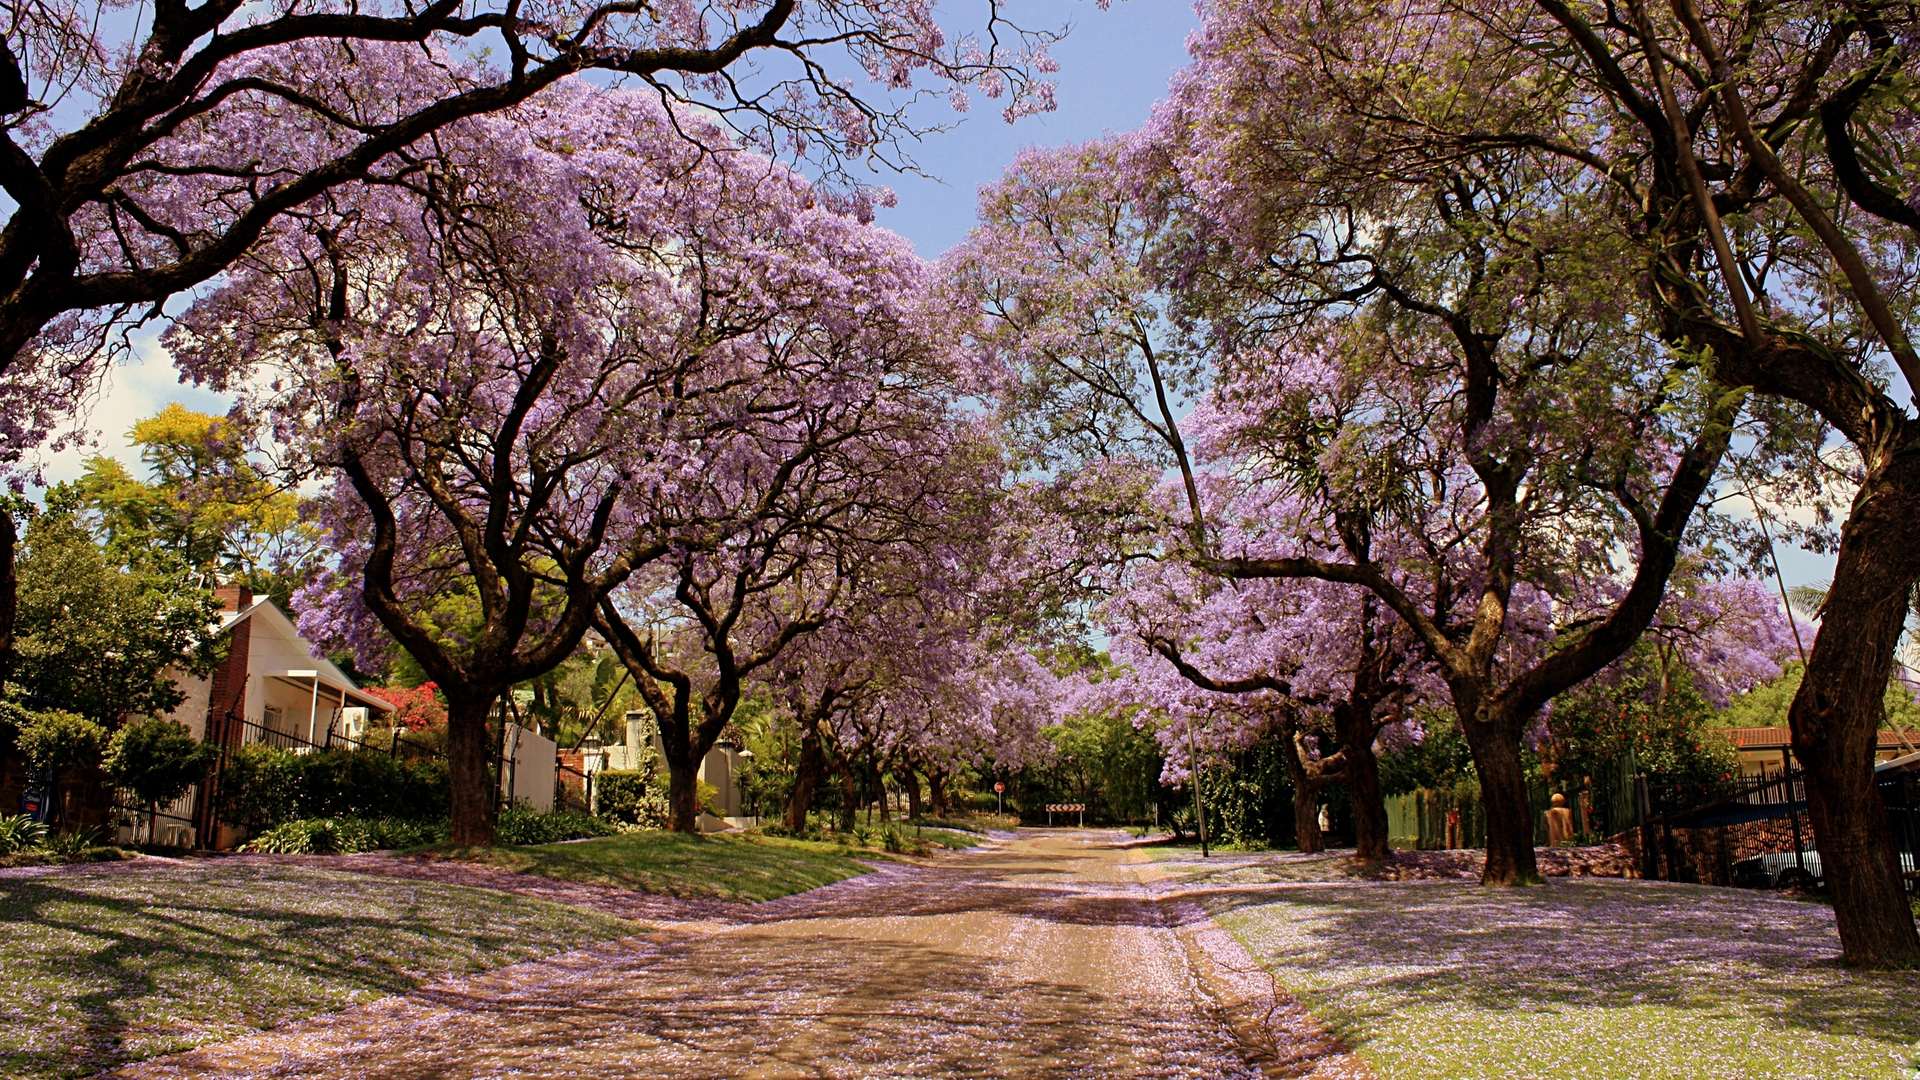 park trees flowers nature spring beautiful